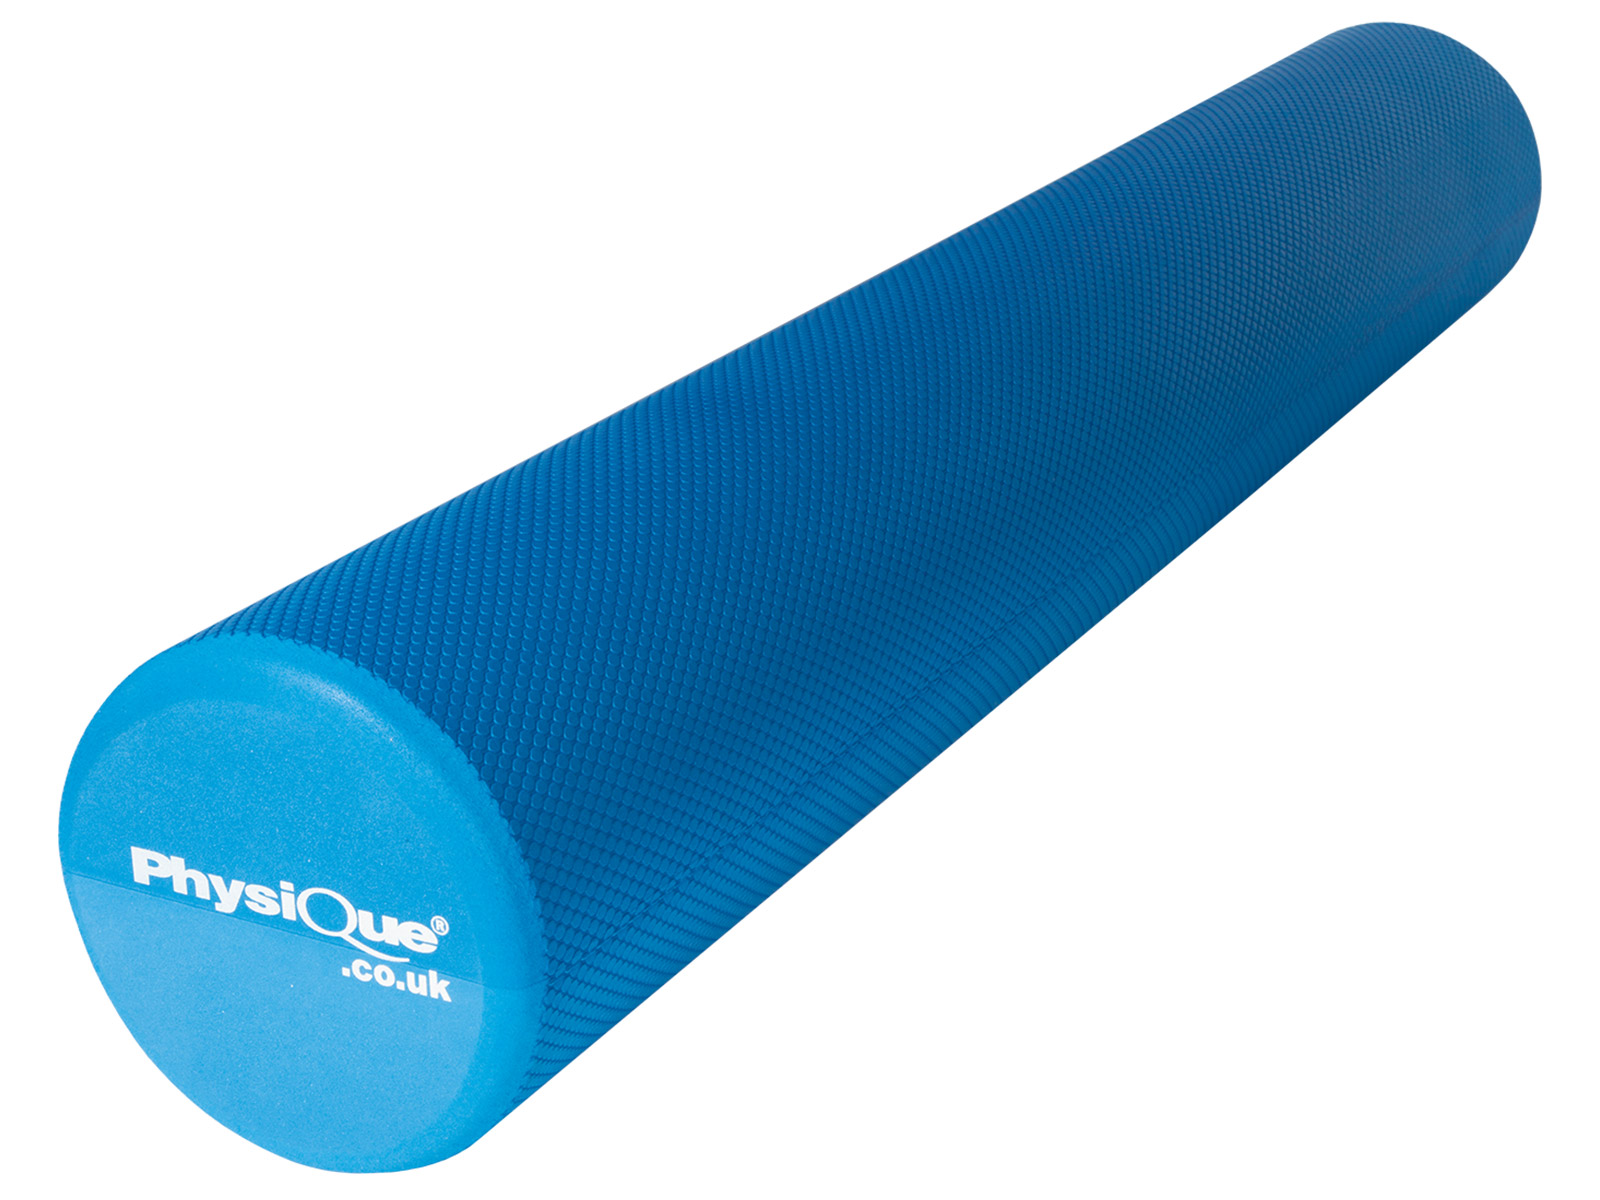 buy pro foam rollers variety of high density foam rollers from physique. Black Bedroom Furniture Sets. Home Design Ideas